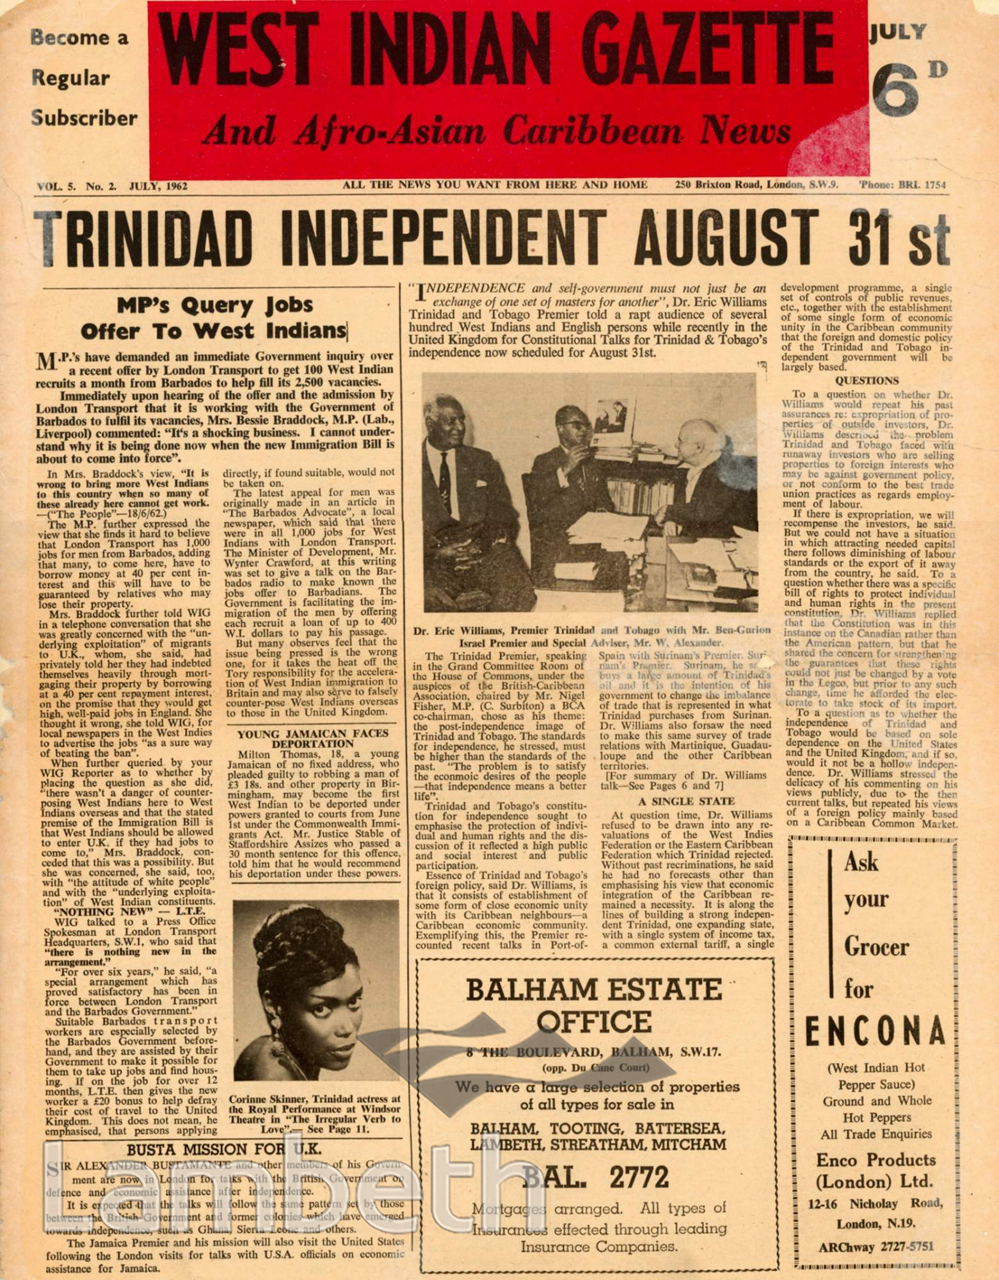 WEST INDIAN GAZETTE, COVER OF THE JULY ISSUE